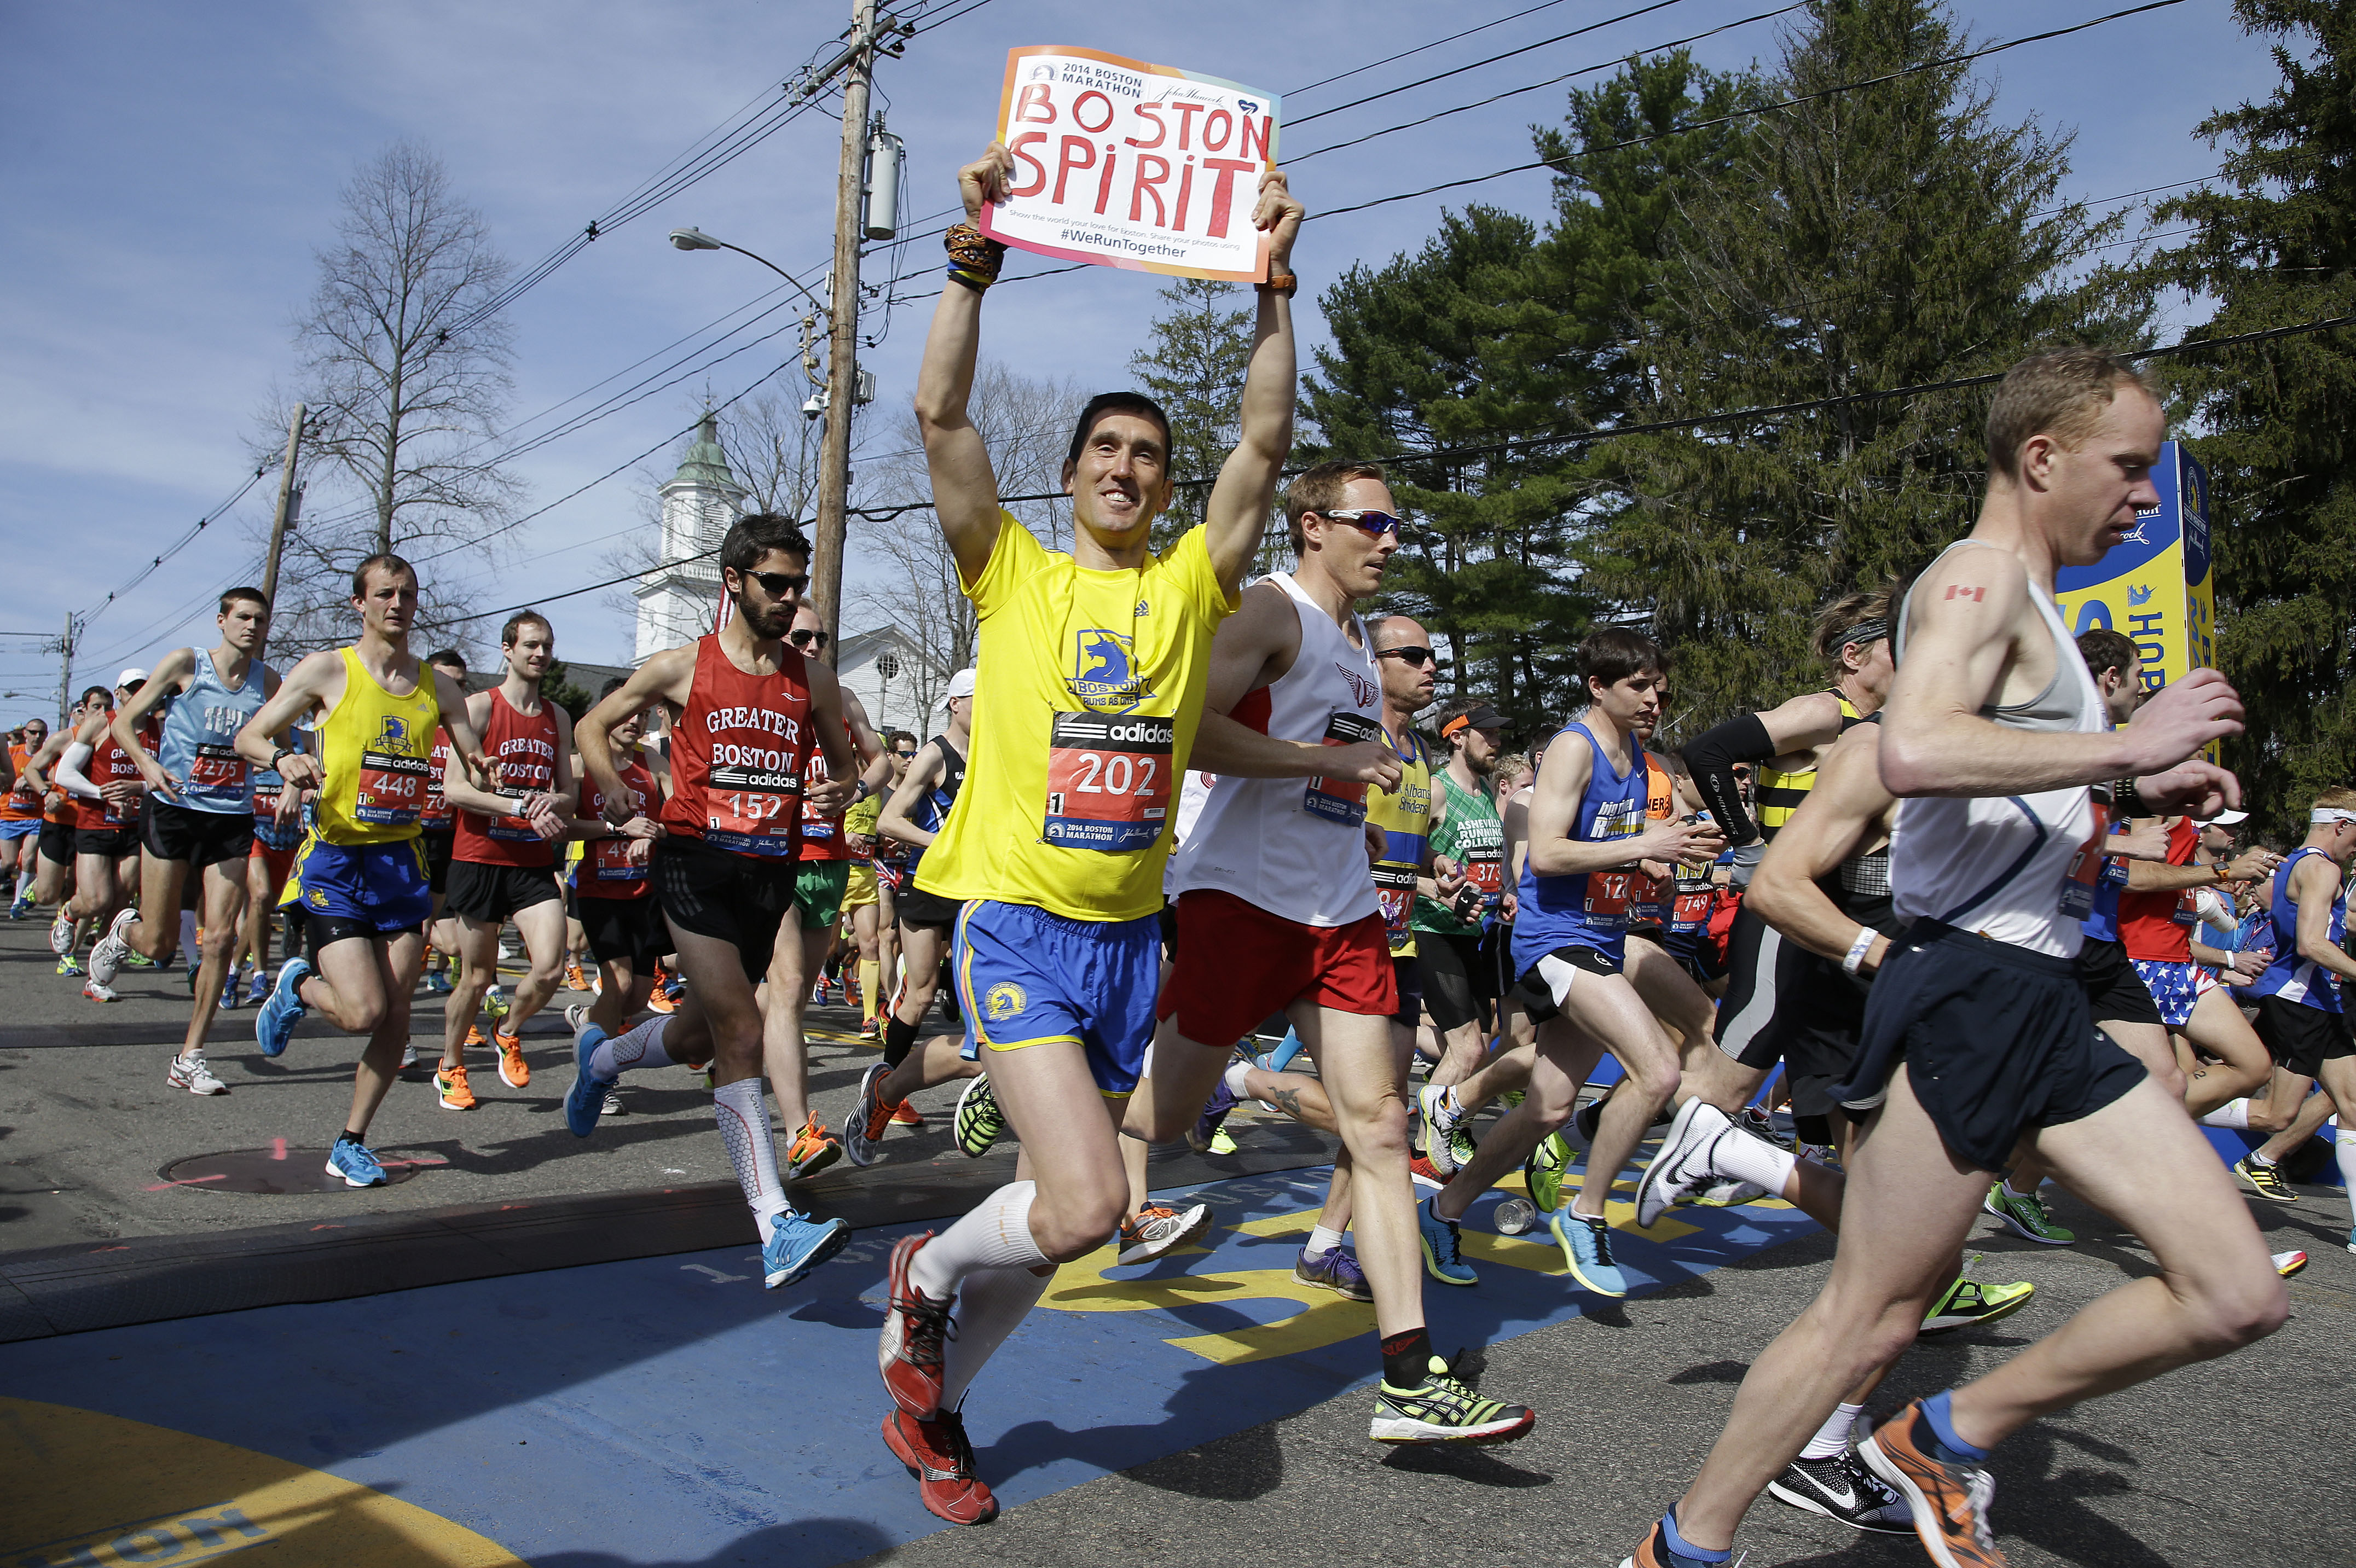 Runners in the first wave of 9,000 cross the start line of the 118th Boston Marathon on Monday in Hopkinton, Mass. Around 36,000 athletes will run the marathon in the first running of the race since last year's bombing attack.